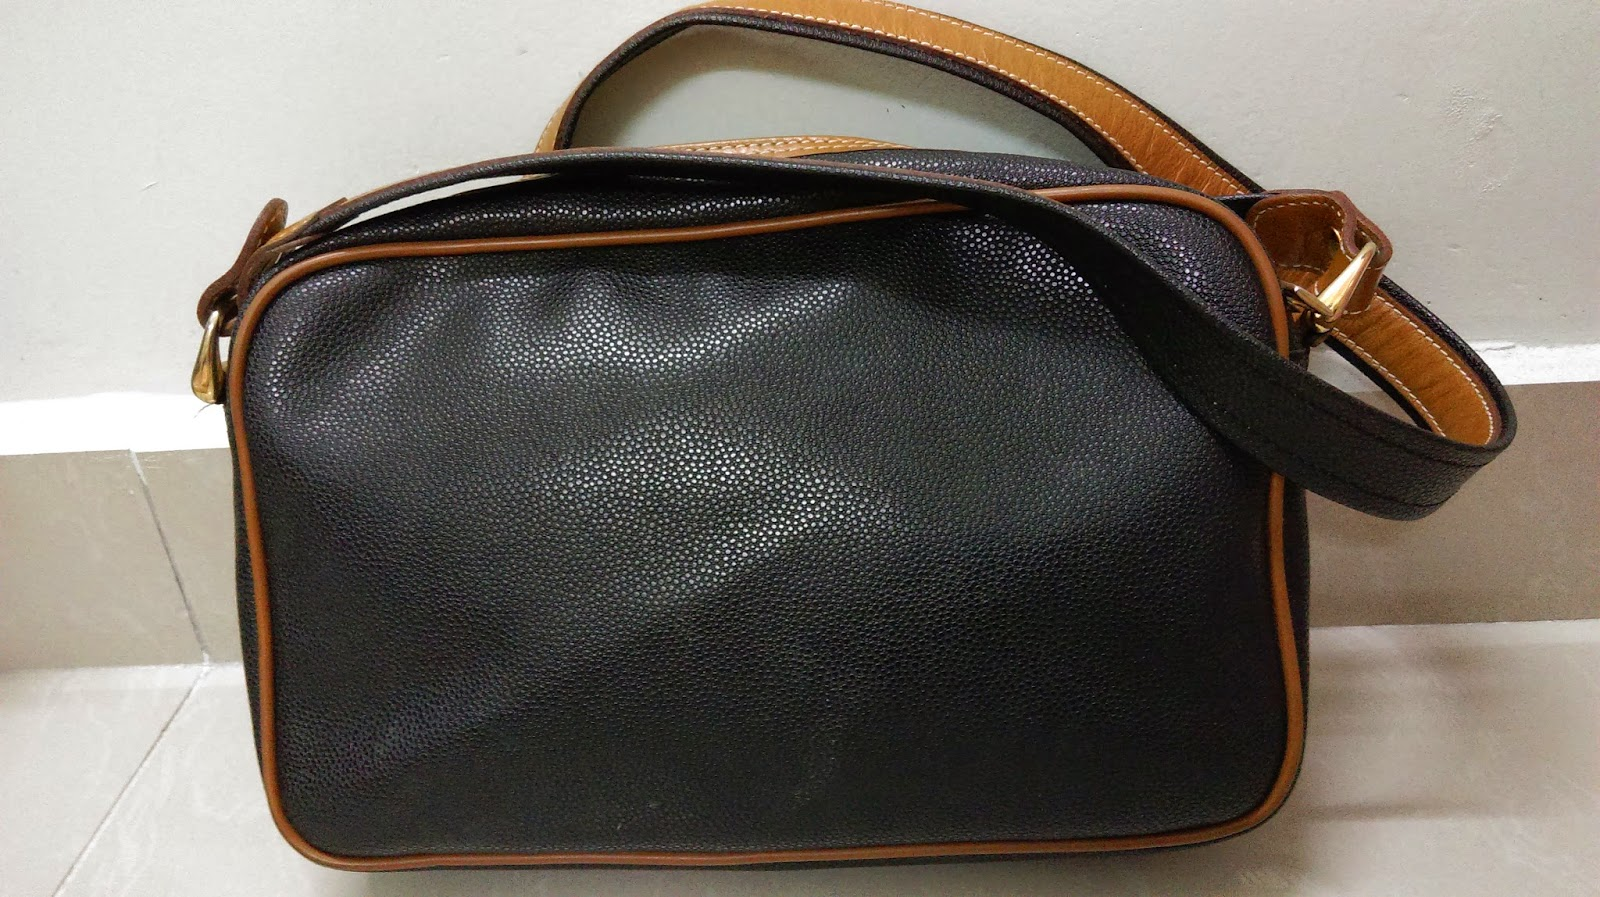 Authentic Vintage Lancel Paris Leather Sling Bag Condition 7 10 Made In Italy 94 04 01 Lampo Zipper Size X 6 5 2 Comes With Dustbag Price